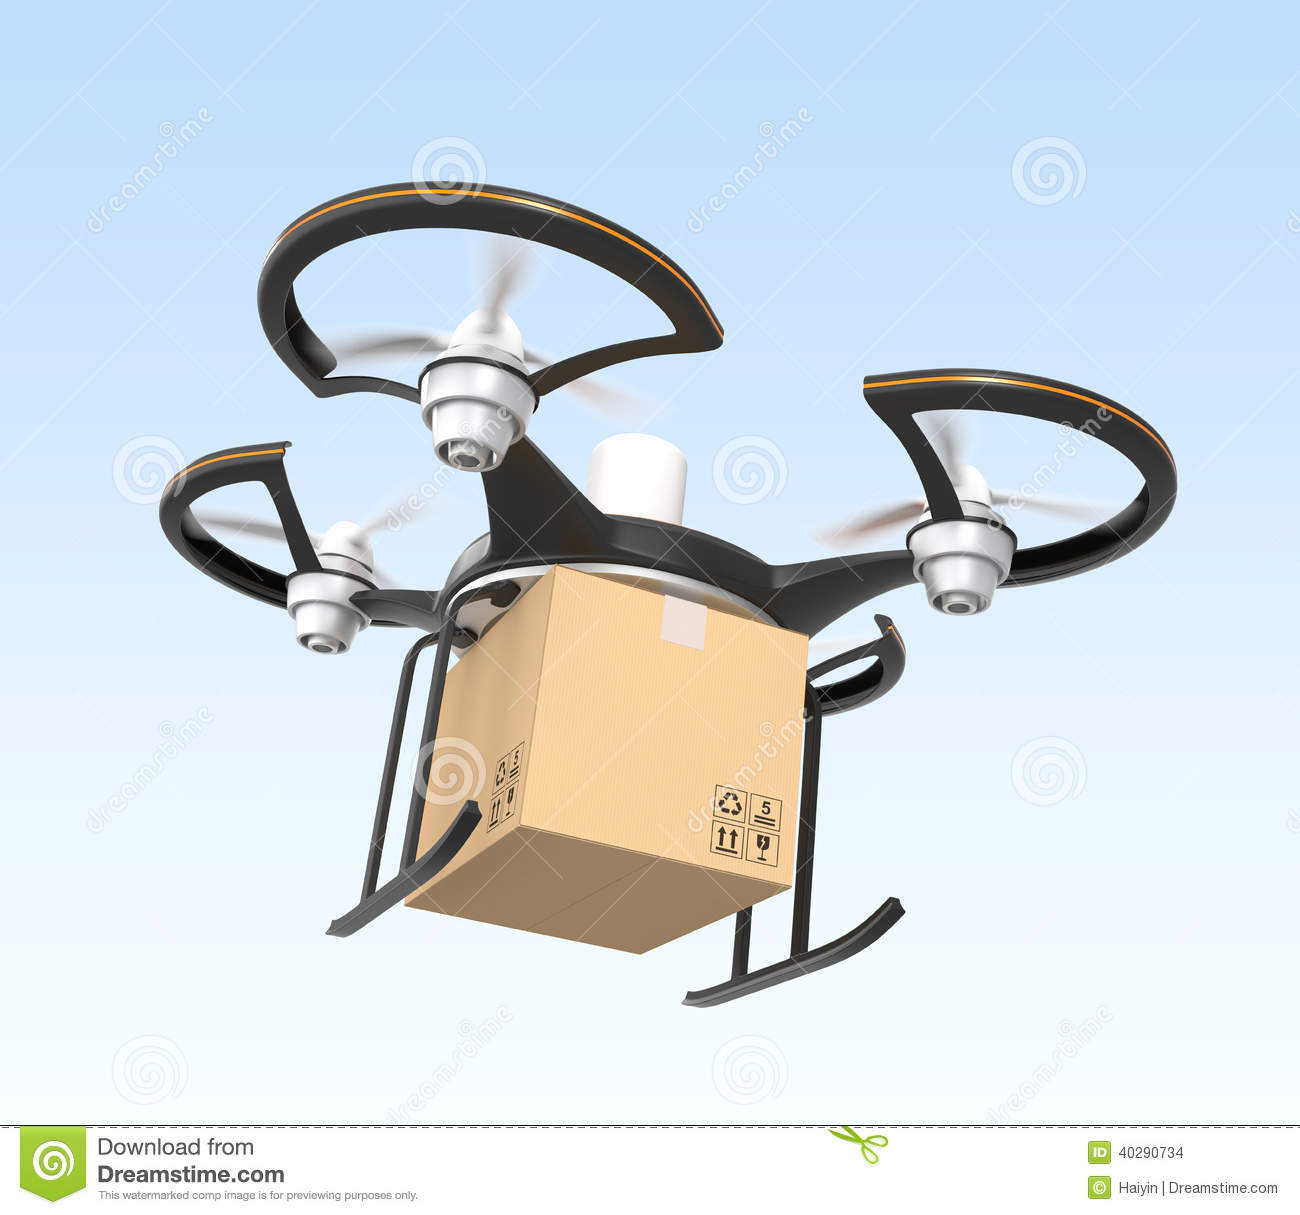 Air Drone With Carton Package Flying In The Sky